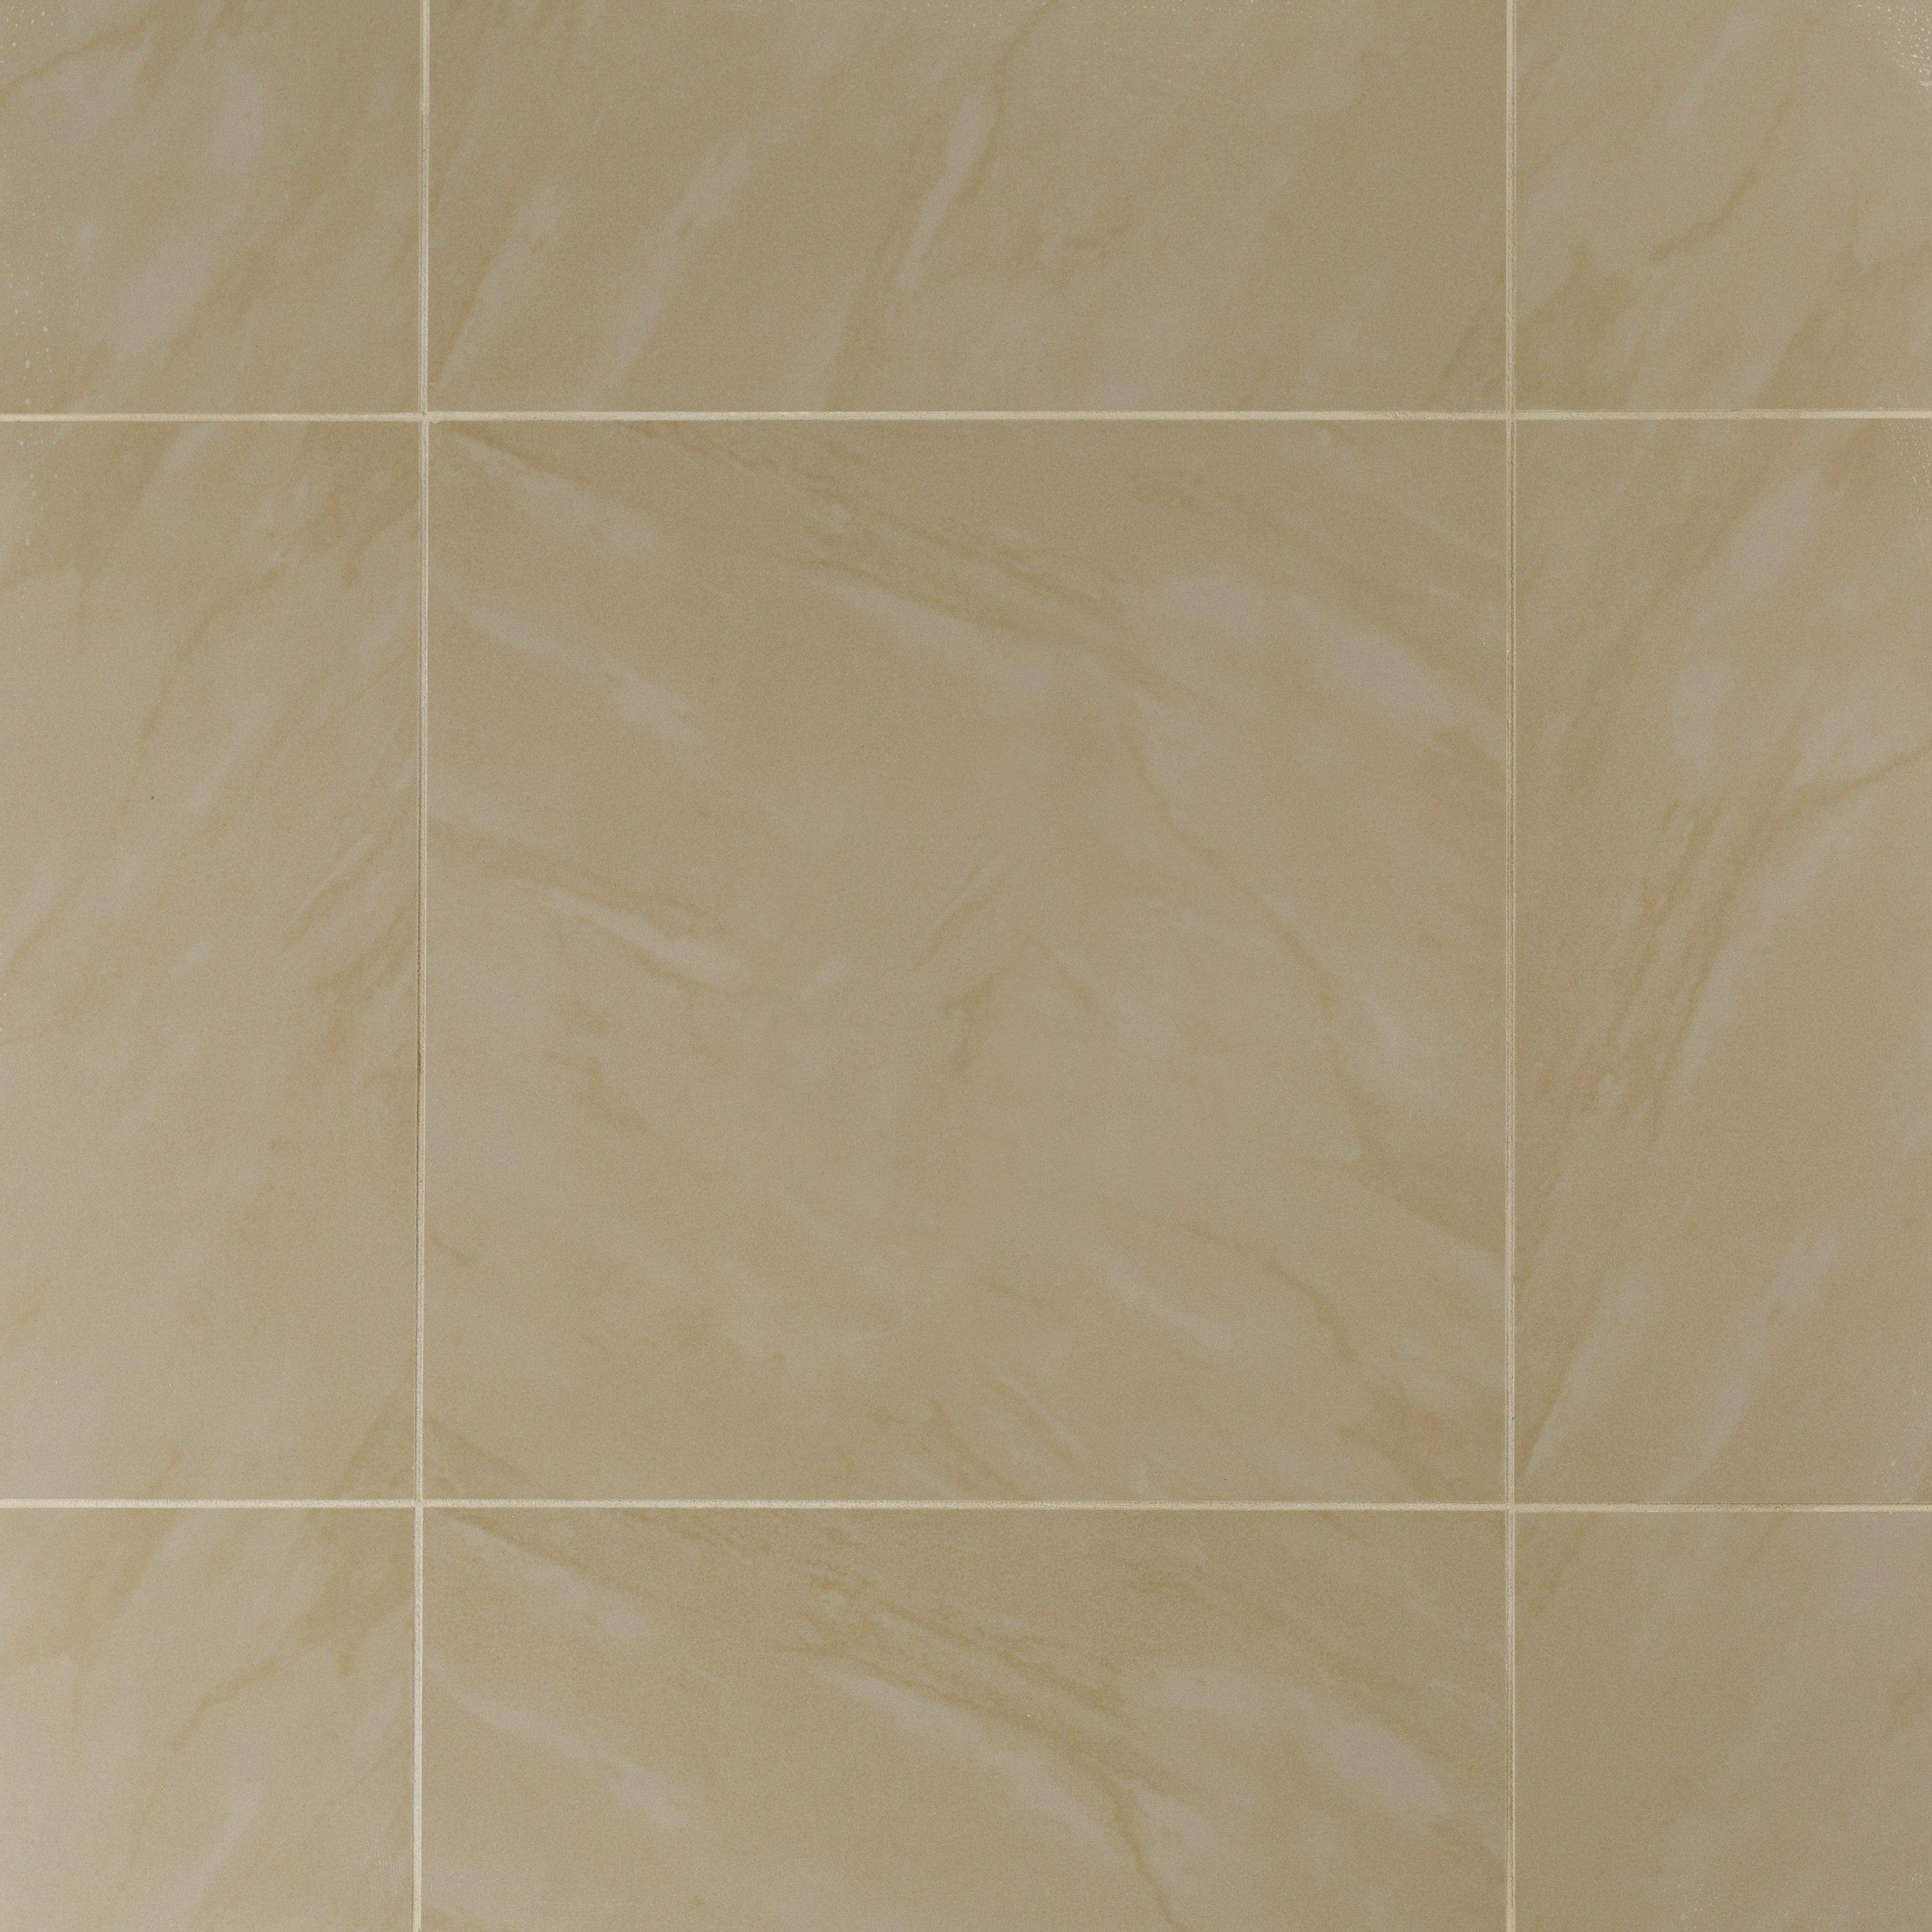 Biscayne beige porcelain tile 20 x 20 100104850 floor and decor dailygadgetfo Gallery